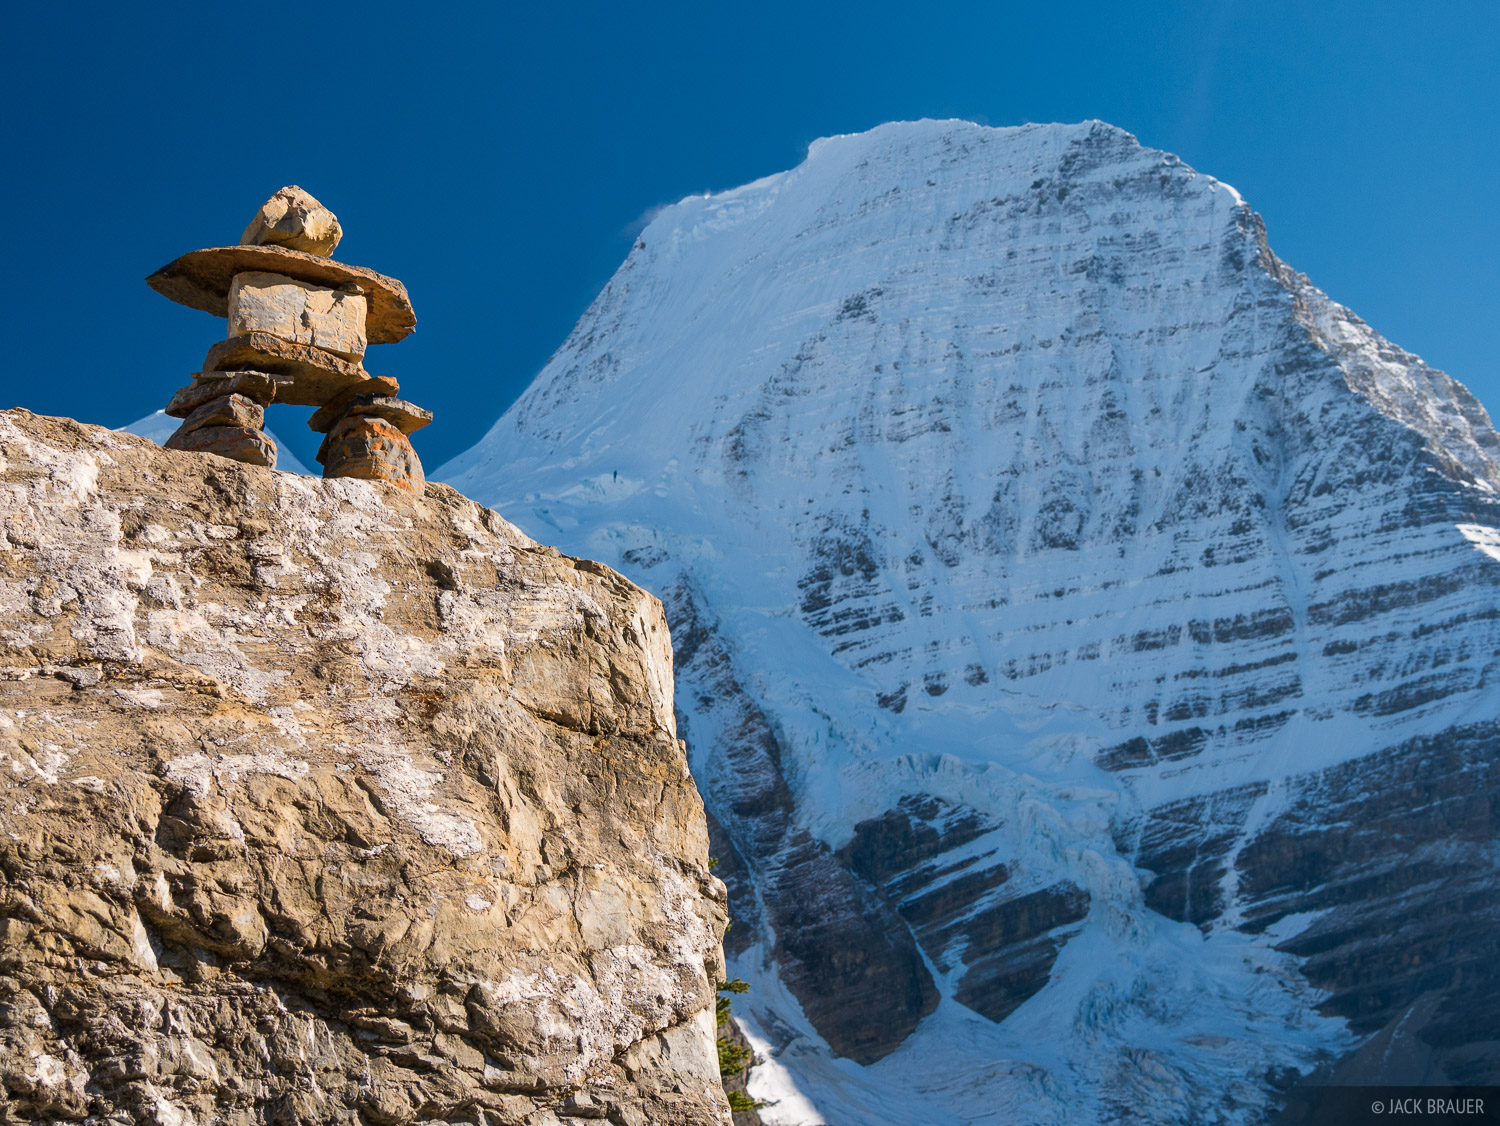 A cairn along the trail to Hargreaves Glacier, with Mount Robson looming overhead.